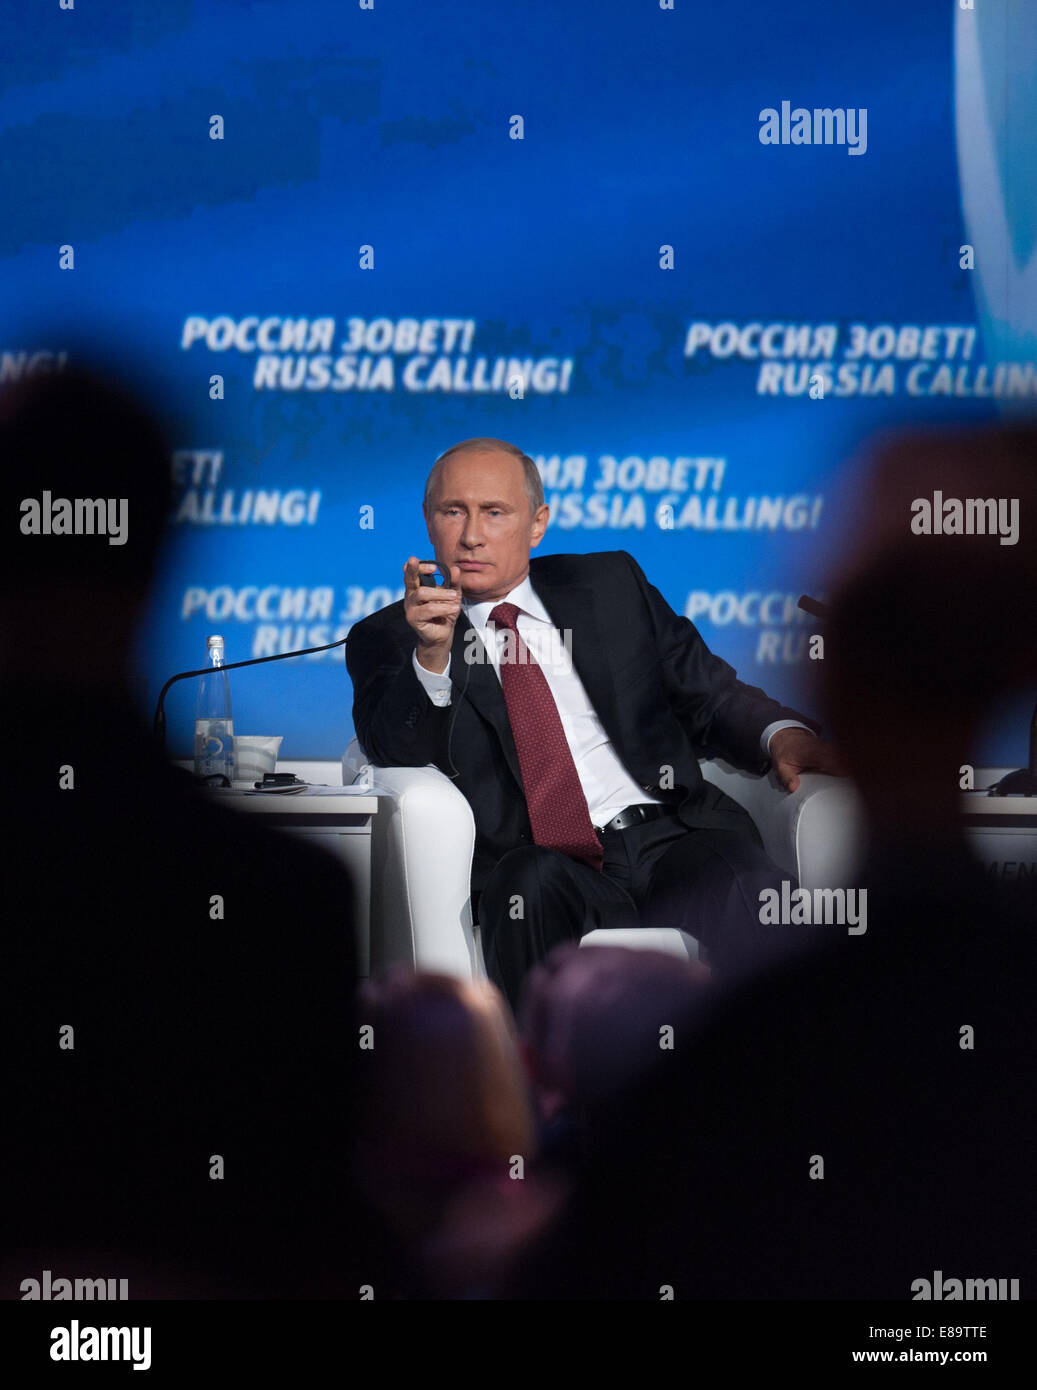 Moscow, Russia. 2nd Oct, 2014. Russian President Vladimir Putin attends the sixth 'Russia Calling' international - Stock Image